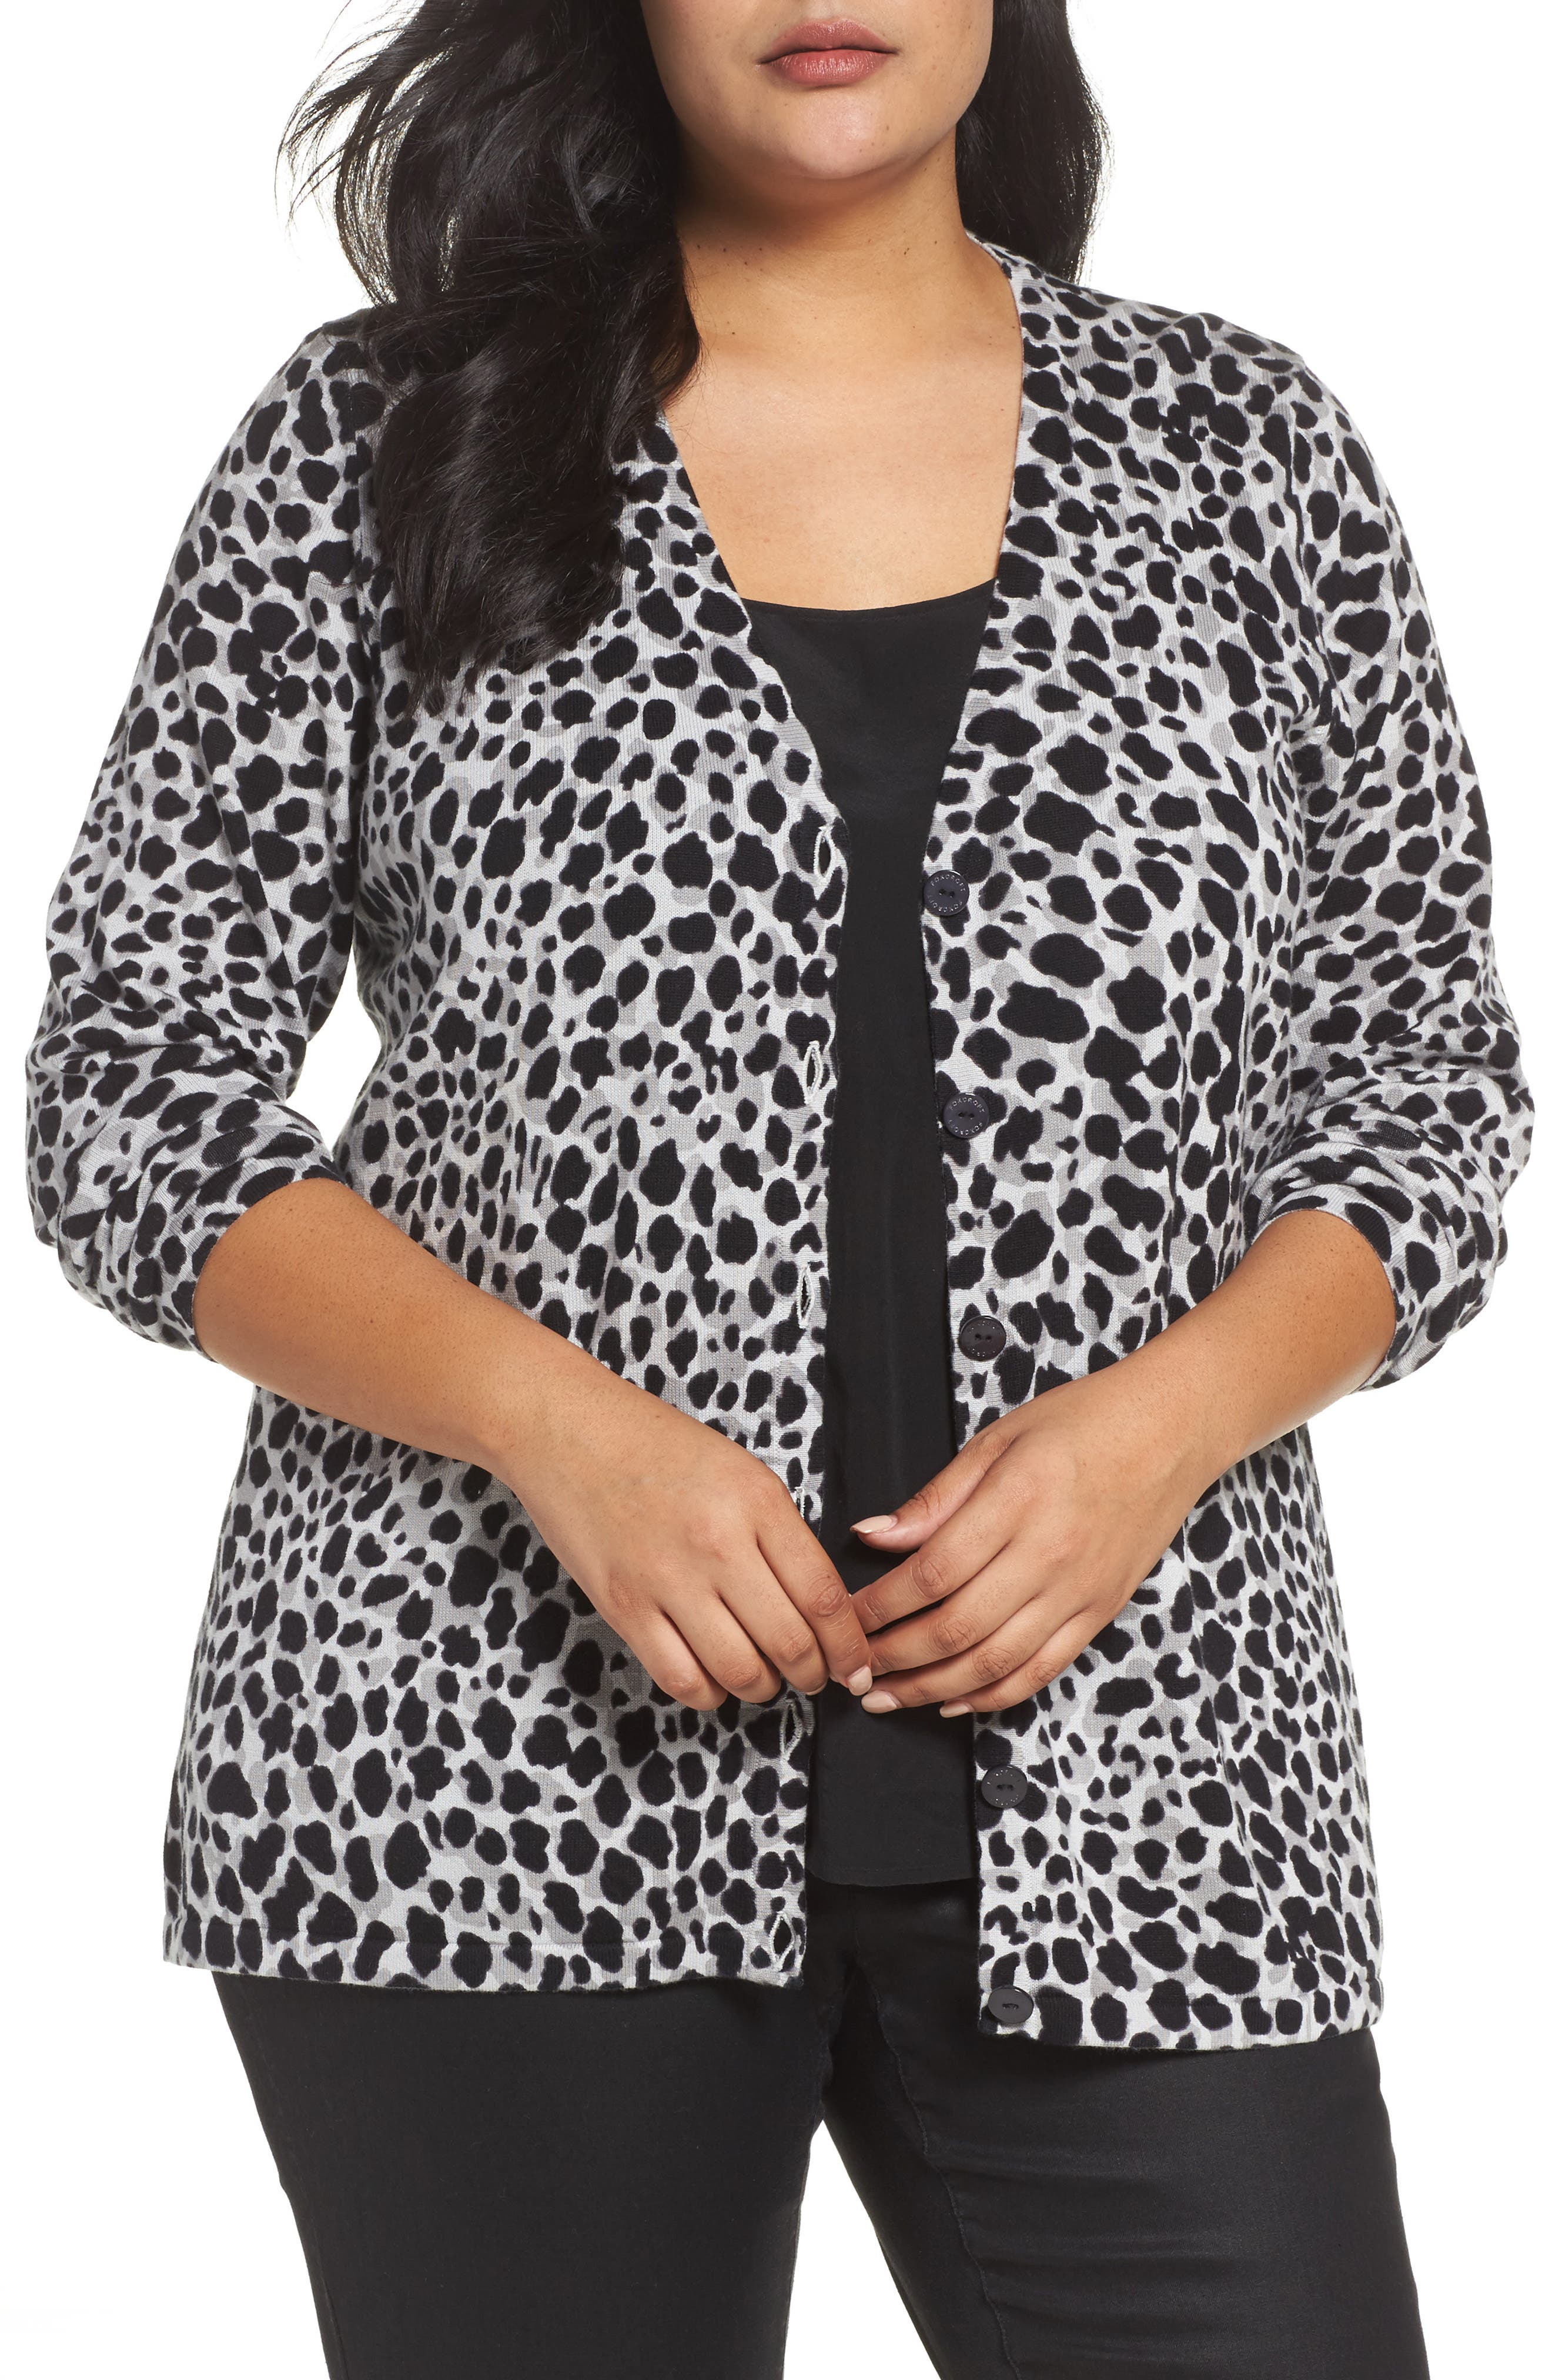 Alternate Image 1 Selected - Foxcroft Maya Leopard Print Cotton Cardigan (Plus Size)